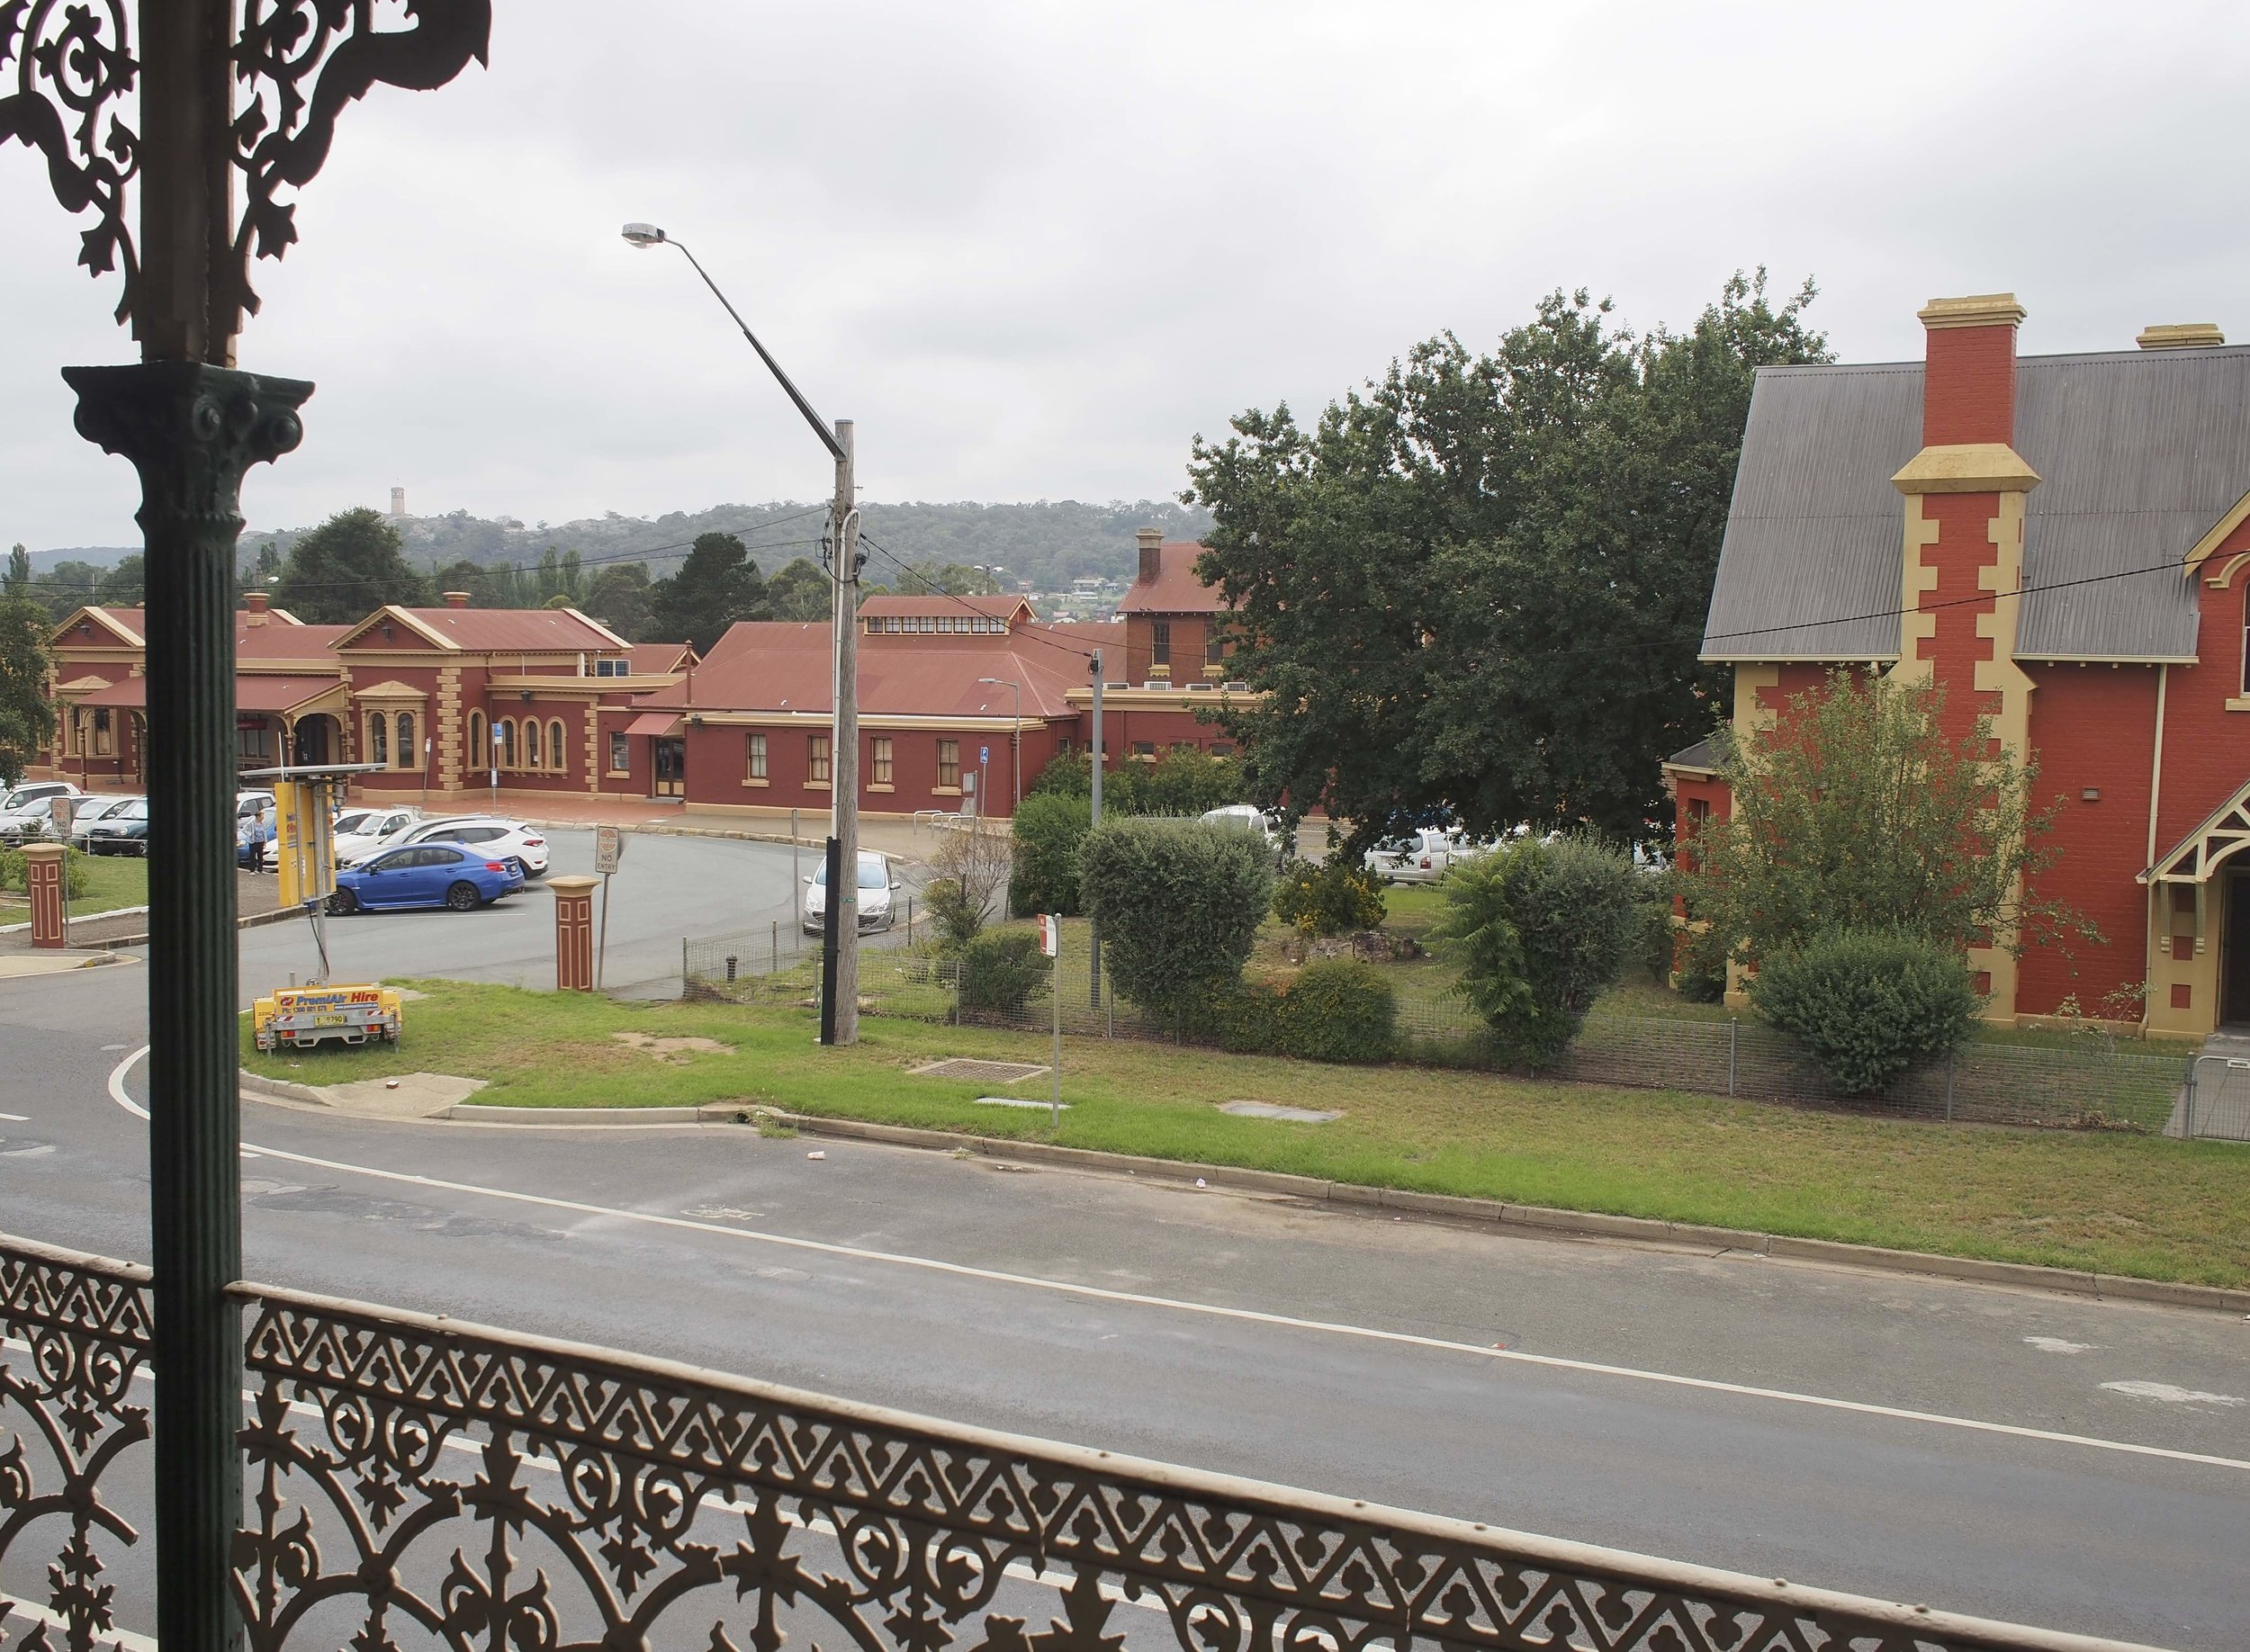 from the verandah of Ernies, a gorgeous old heritage pub overlooking Goulburn Railway station.